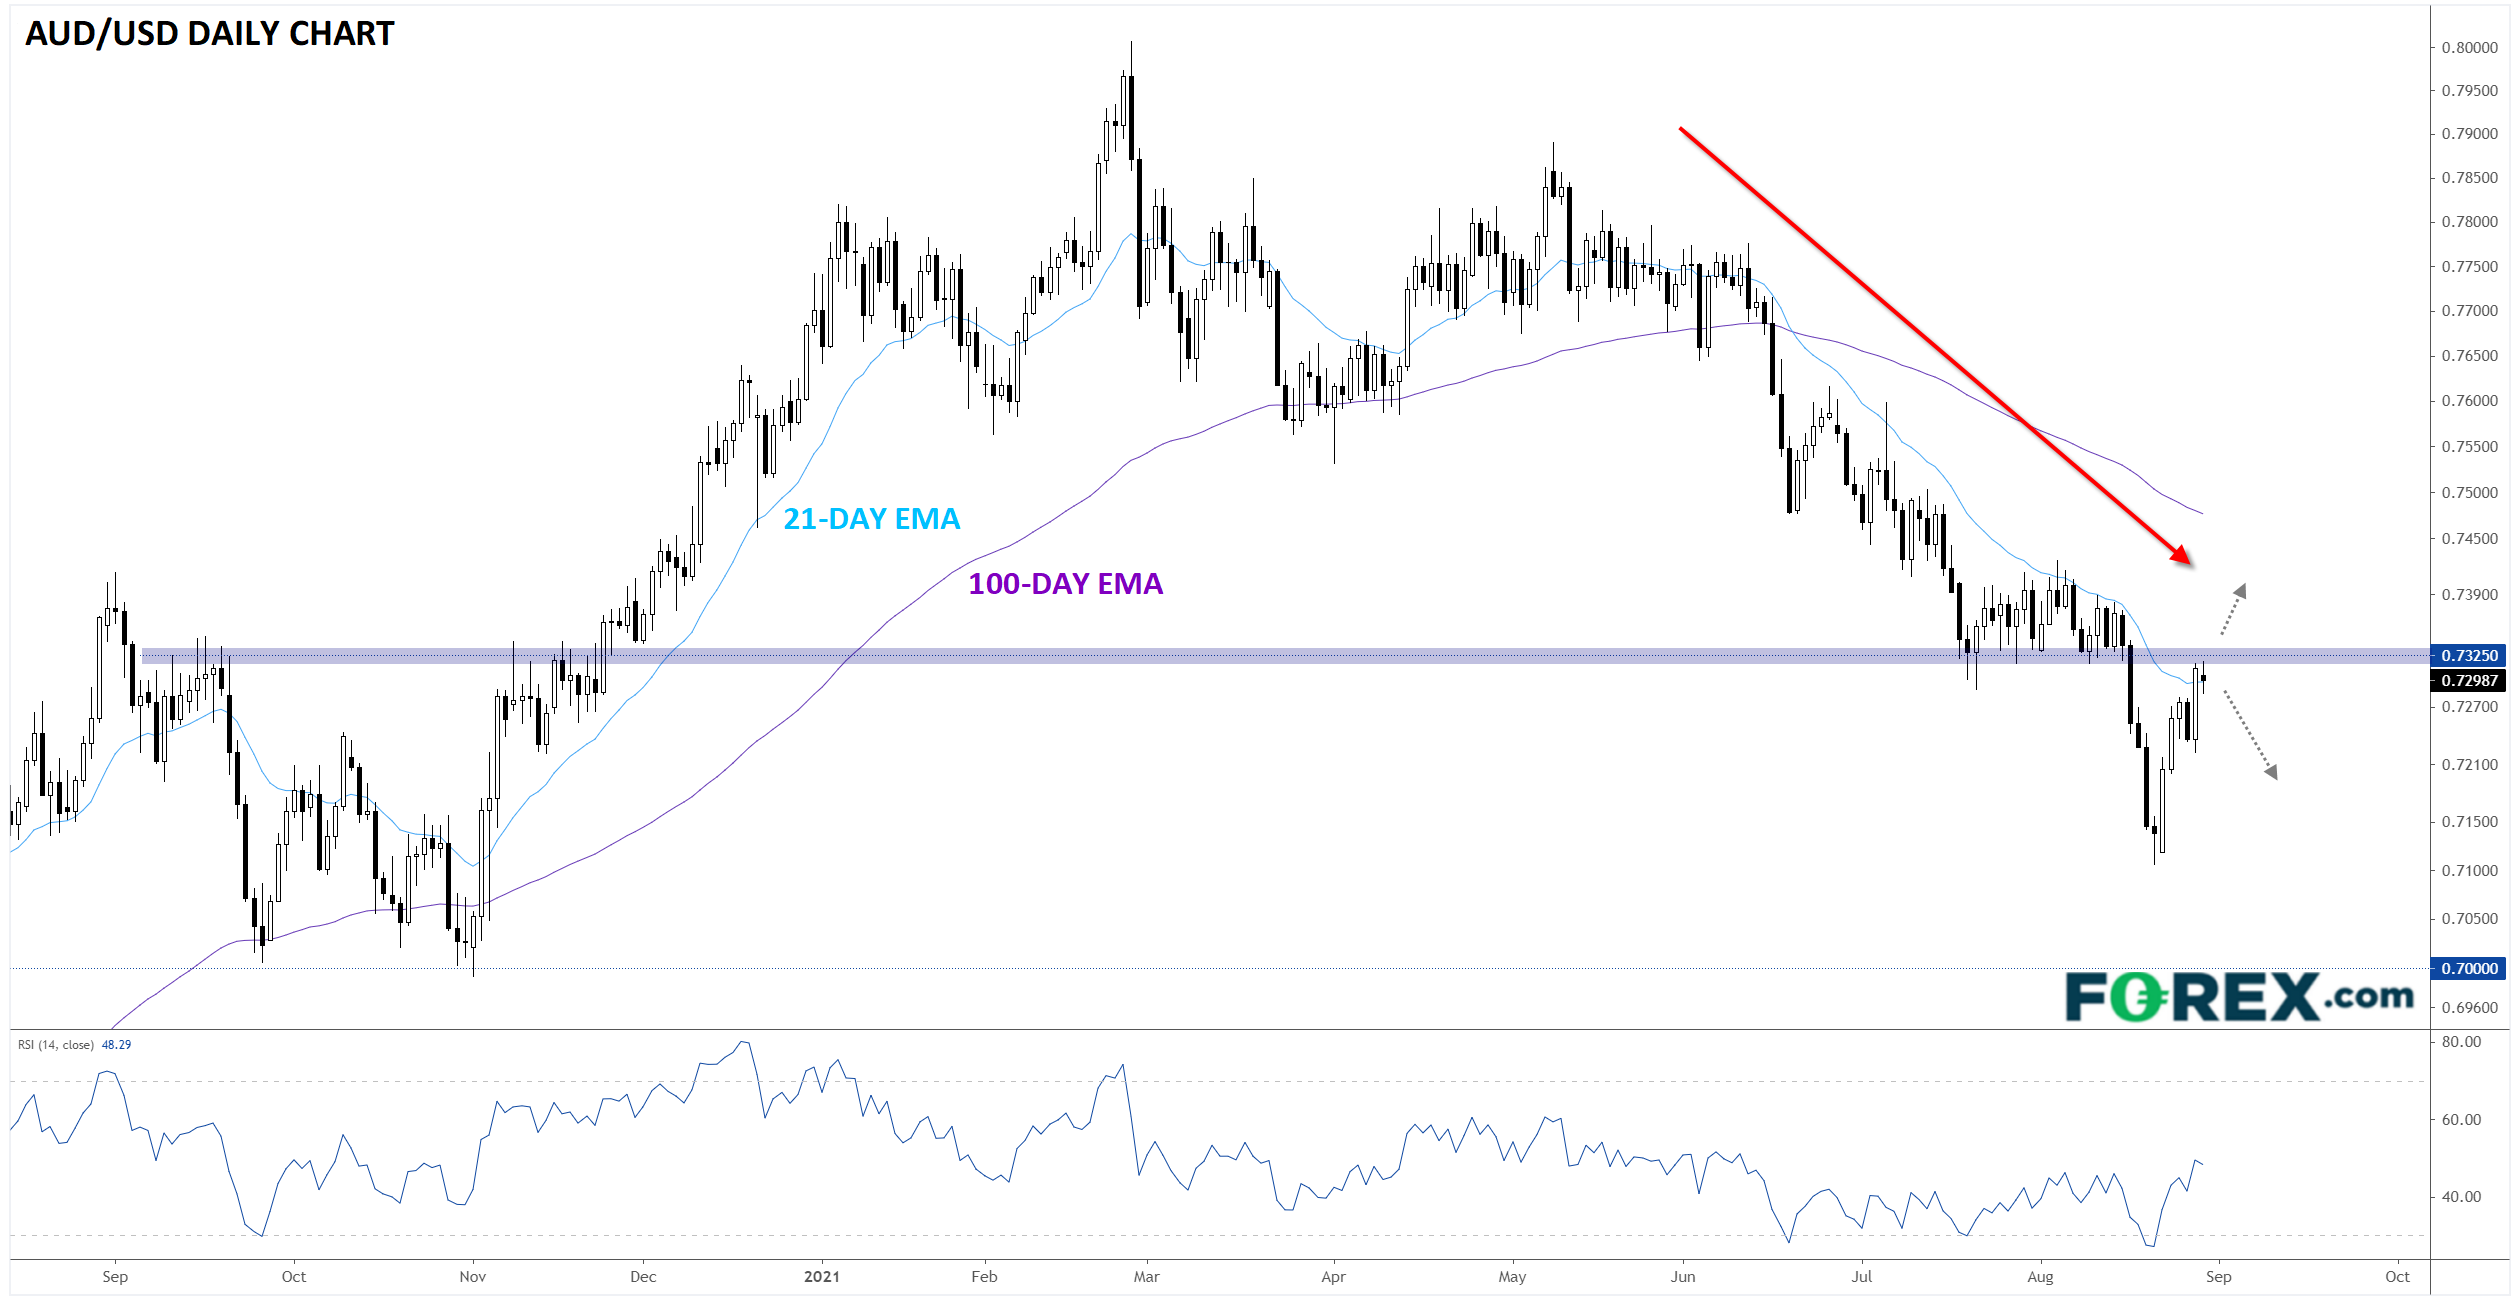 Currency Pair Of The Week: AUD/USD Testing Resistance Ahead Of Key Data Releases